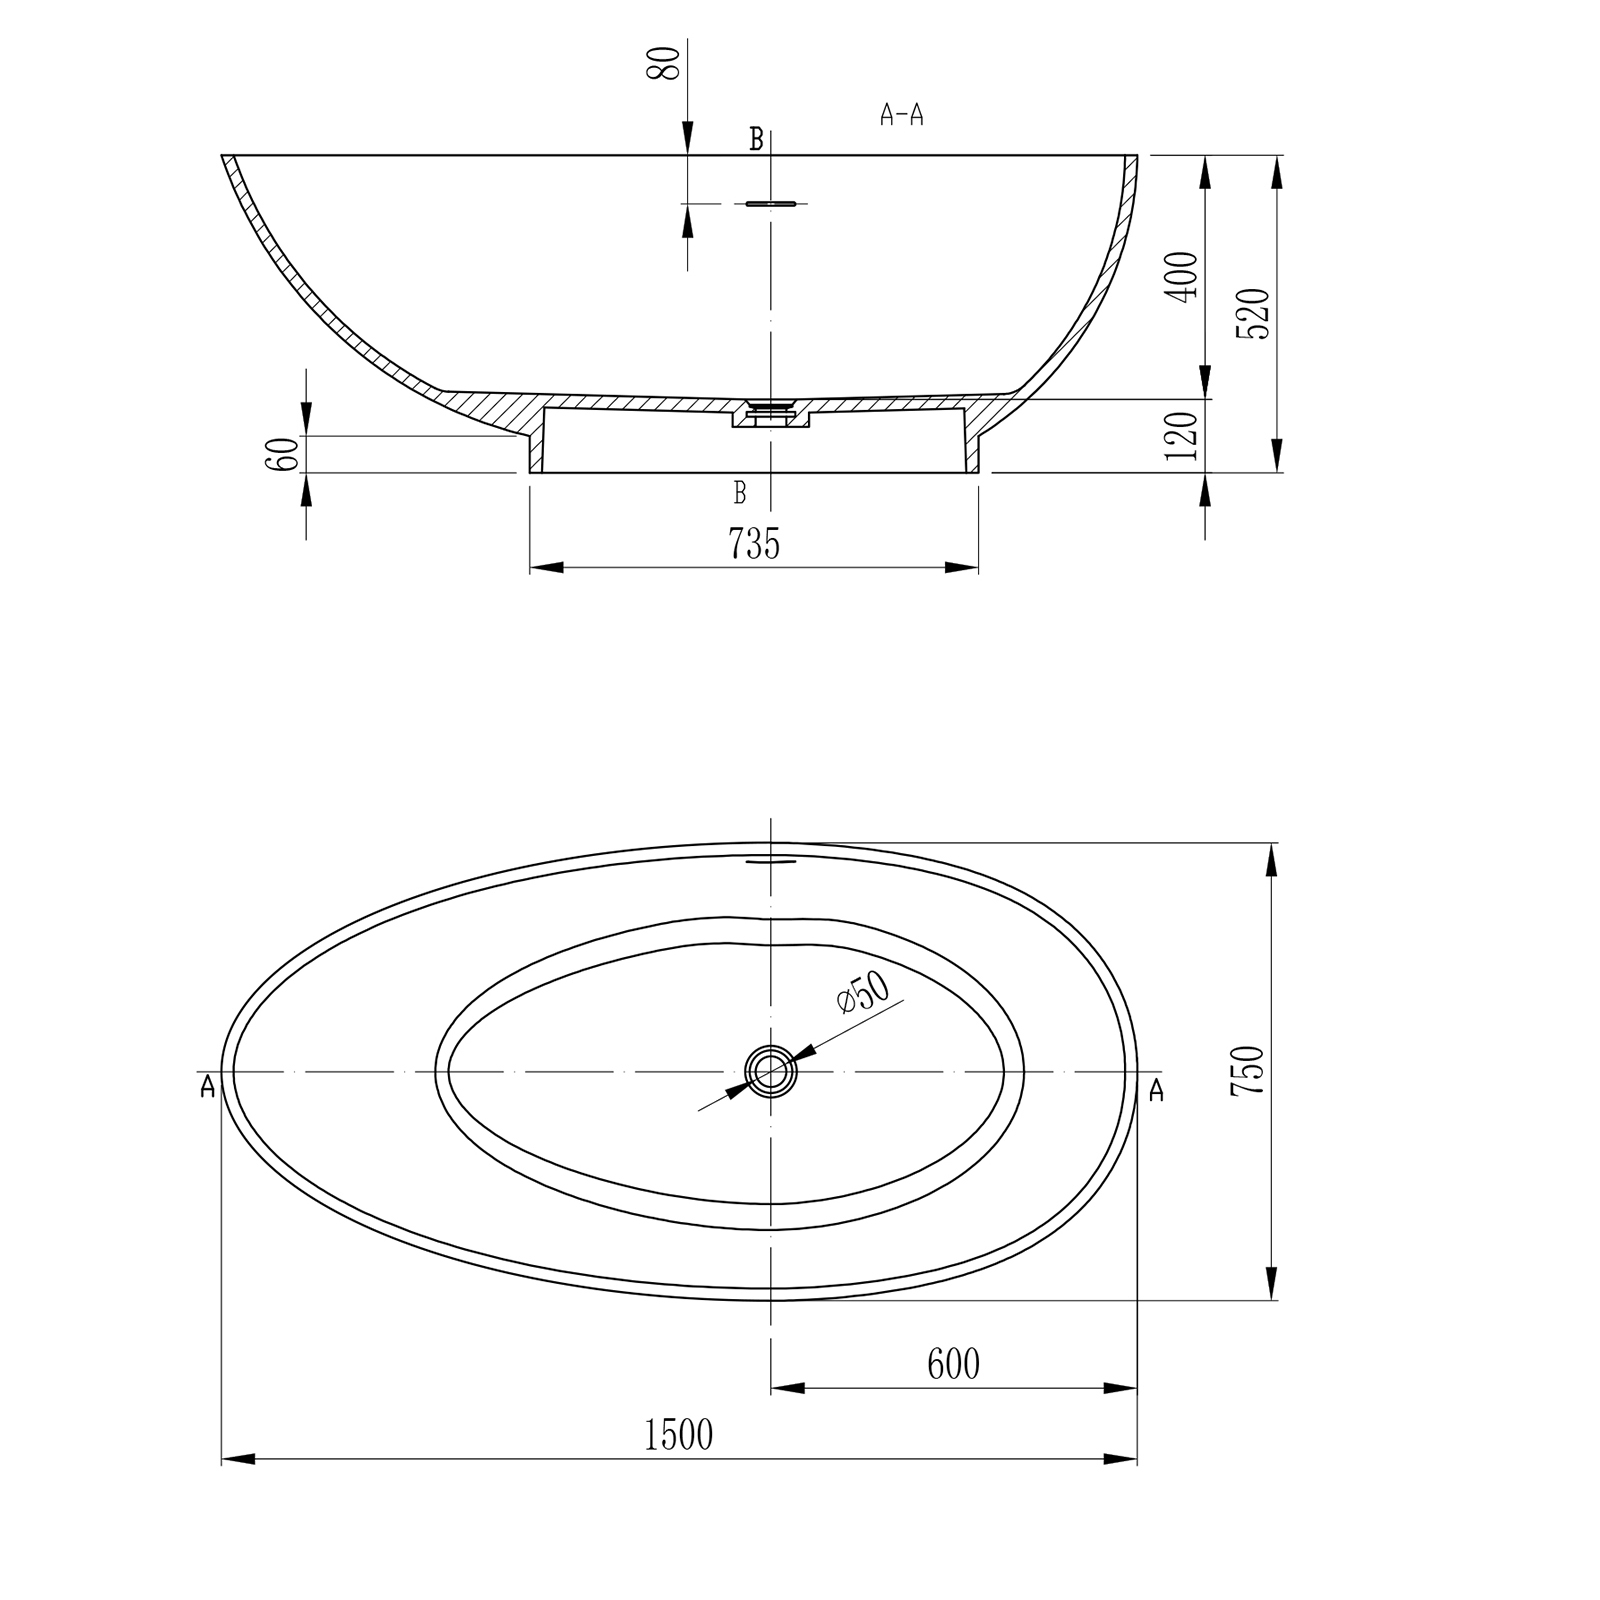 Freestanding bathtub VIGO 150cm - Drawing 1